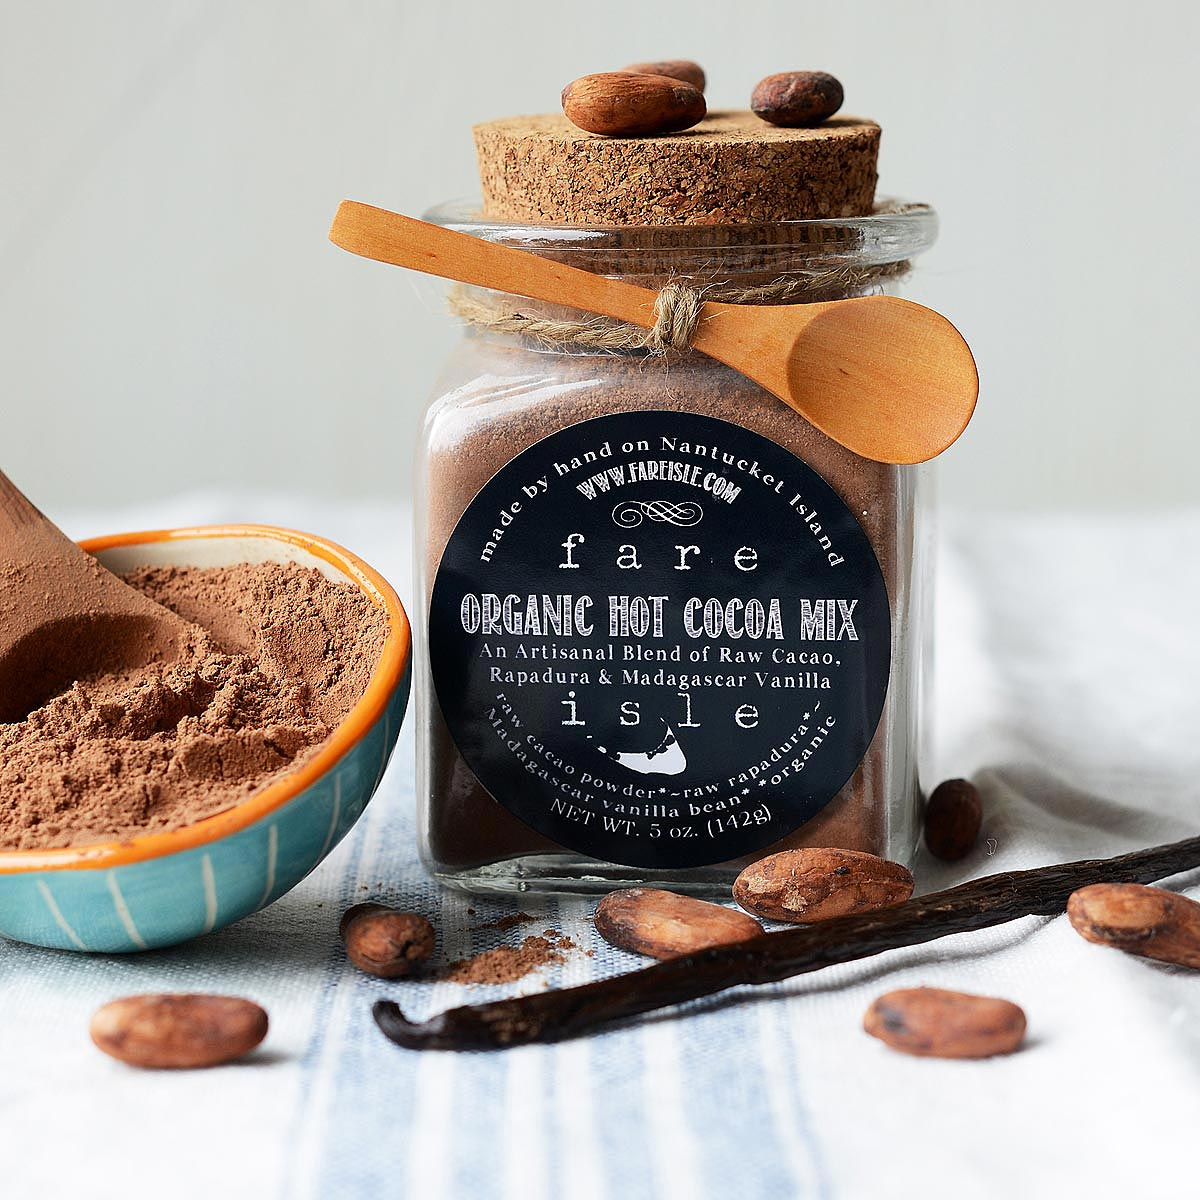 Organic Hot Cocoa Mix with Vanilla Bean | gourmet hot chocolate ...